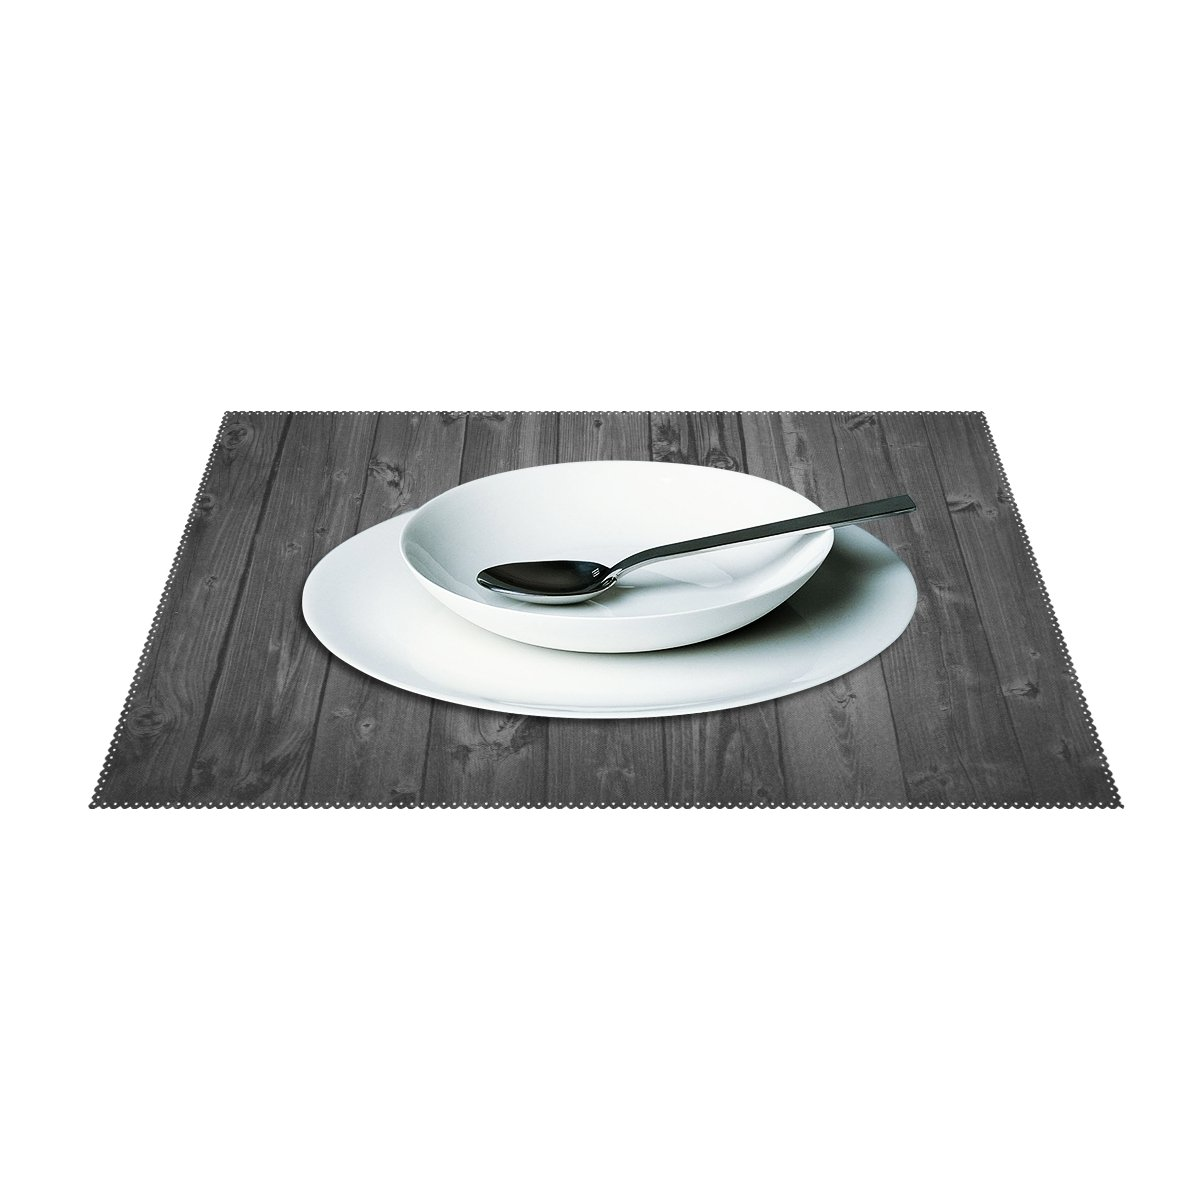 AIDEESS Custom Floor Heat-resistant Placemat Table Mat, Rustic Old Barn Wood Pattern Polyester Placemats Non-slip Insulation Mats 12''x18'' by AIDEESS (Image #3)